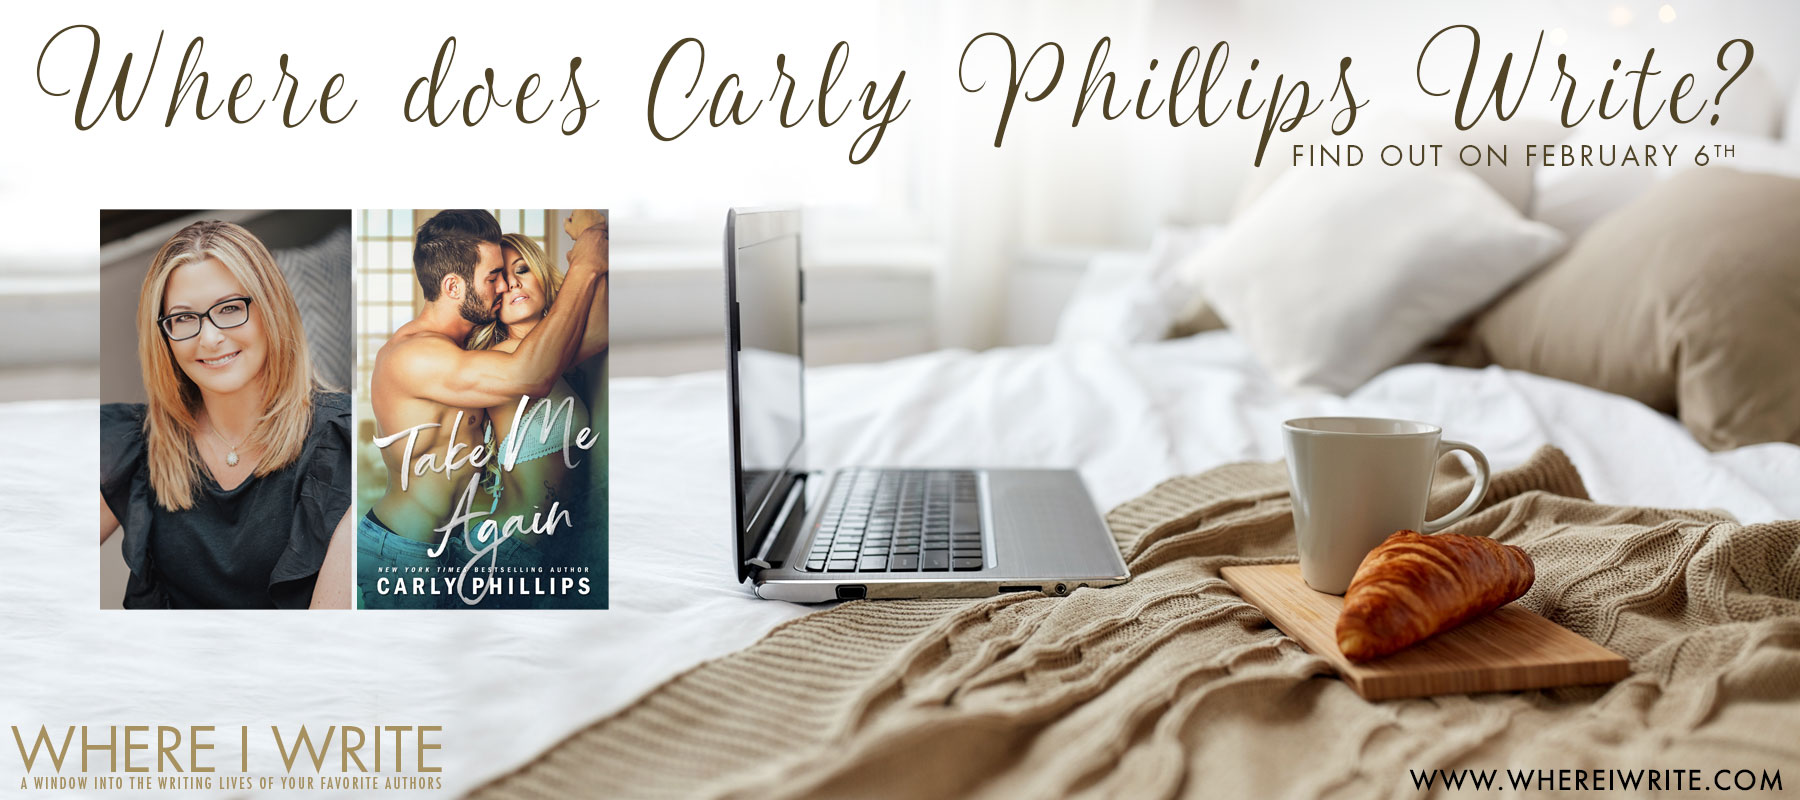 AuthorWrites-Template-CarlyPhillips.jpg